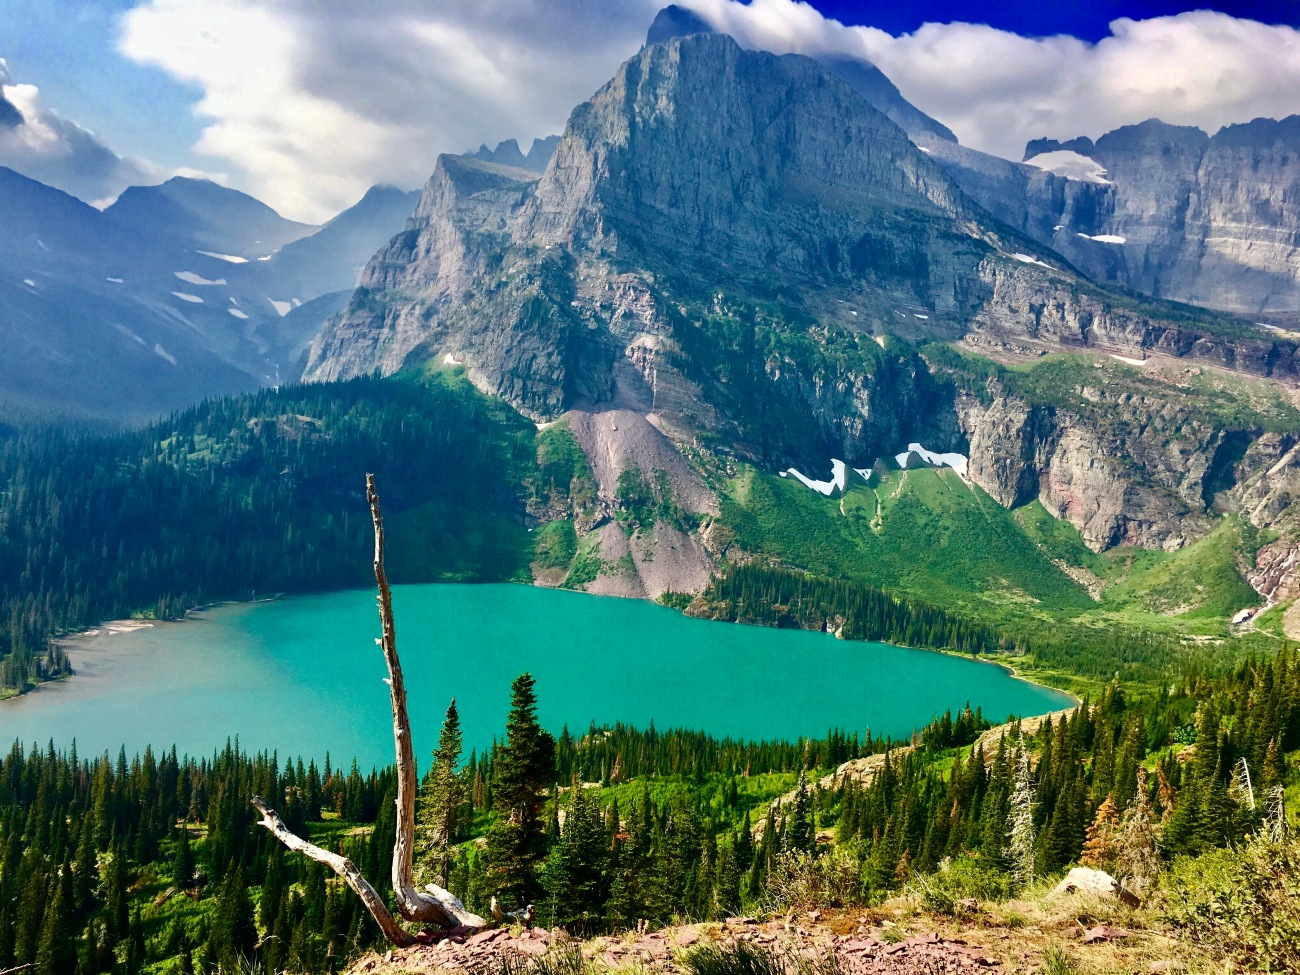 national parks, glacier national park, grinnell, highline, trail, hikes, adventure, forest, wildlife, wildflowers, nature montana mountains